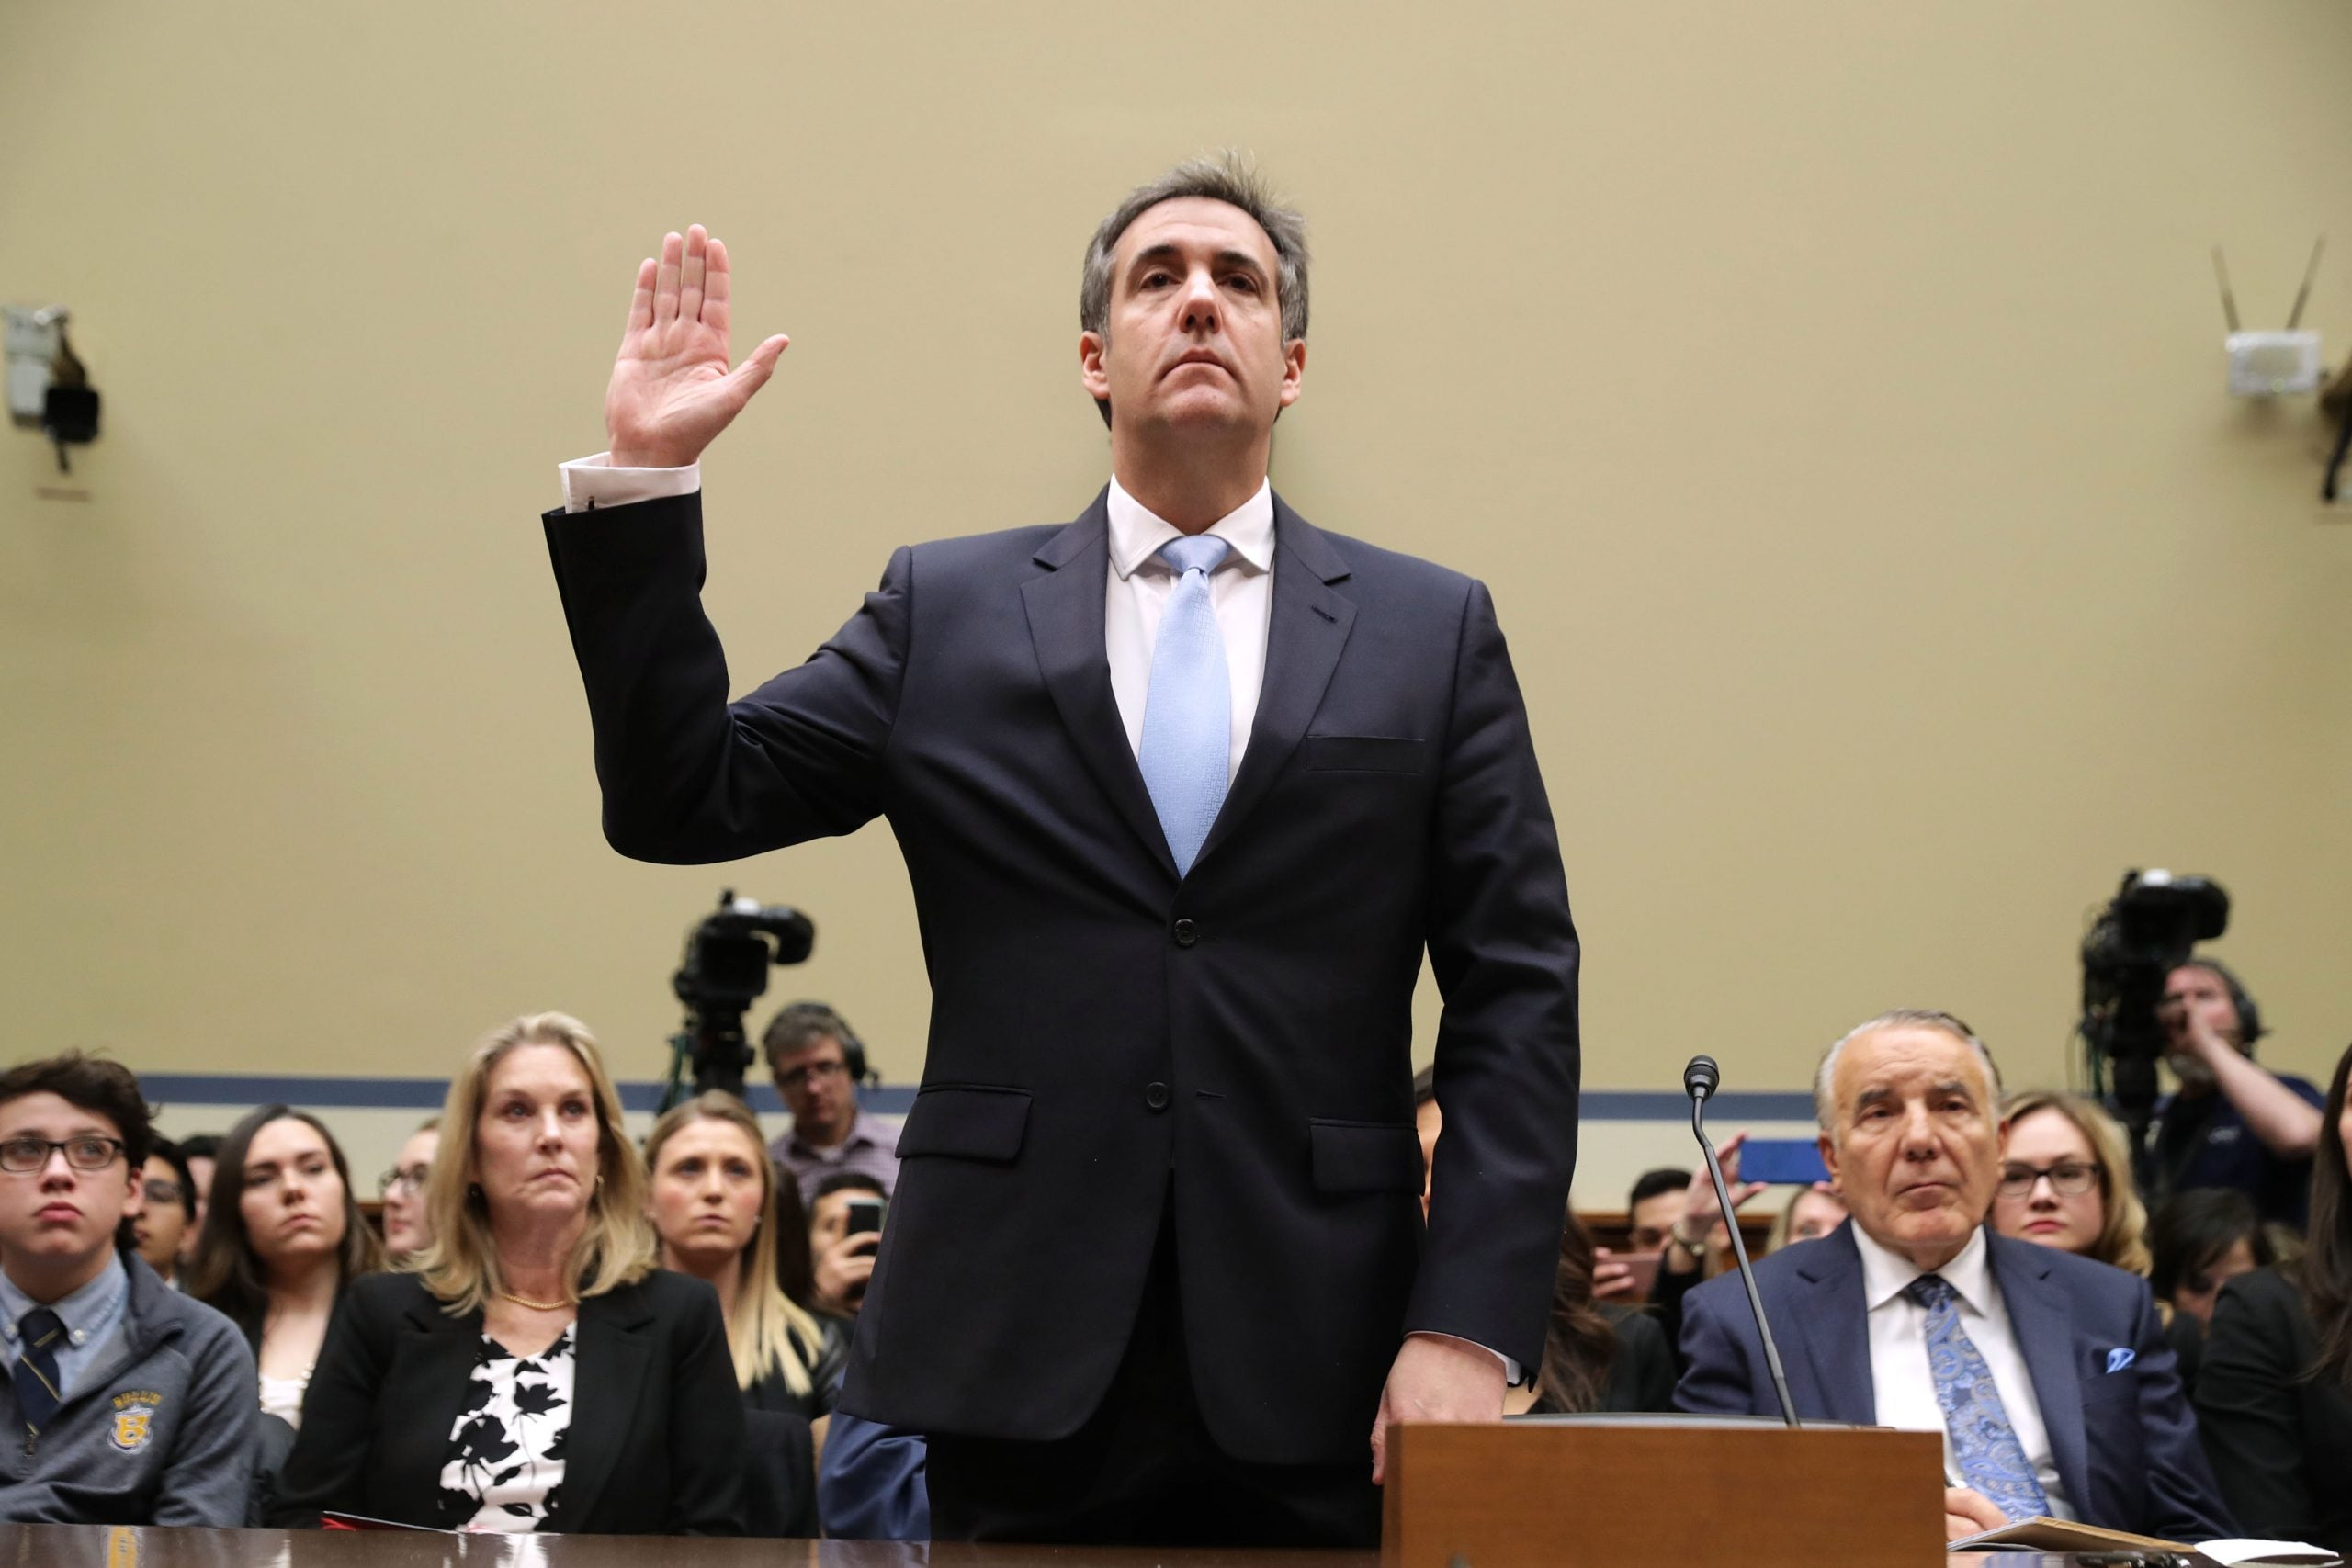 22 things we learned from Michael Cohen's jaw-dropping Congressional testimony